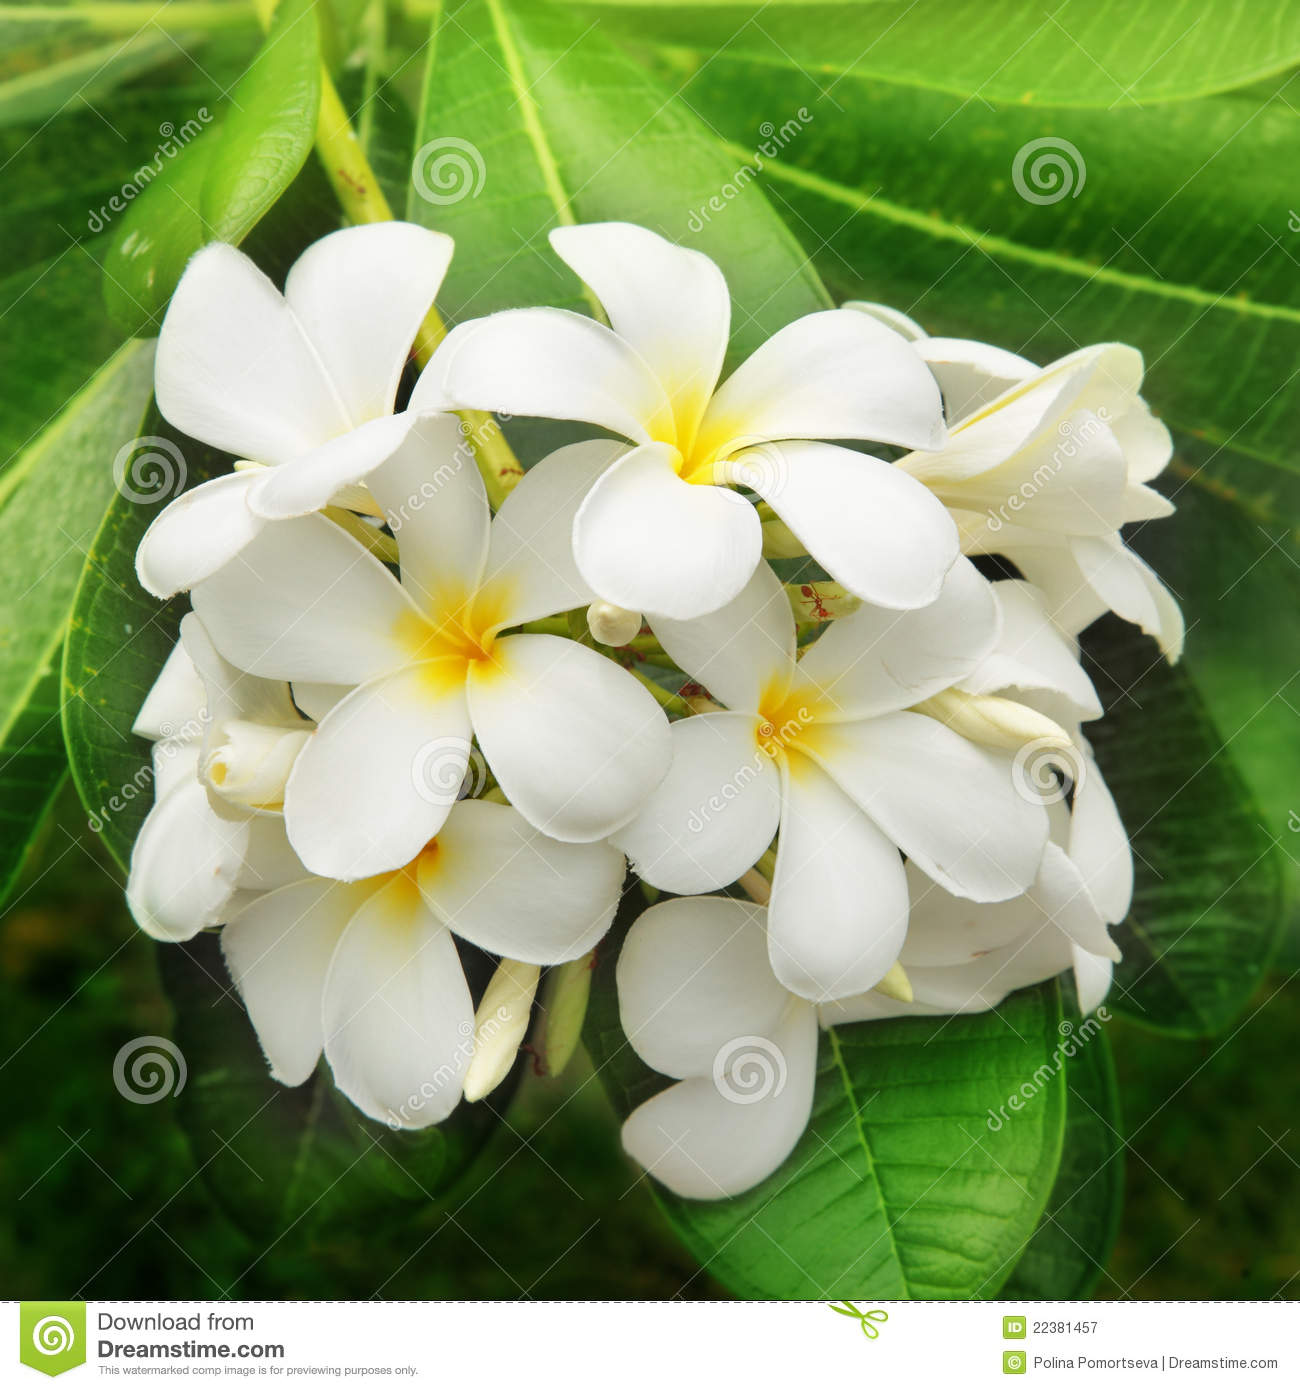 Branch of tropical flowers